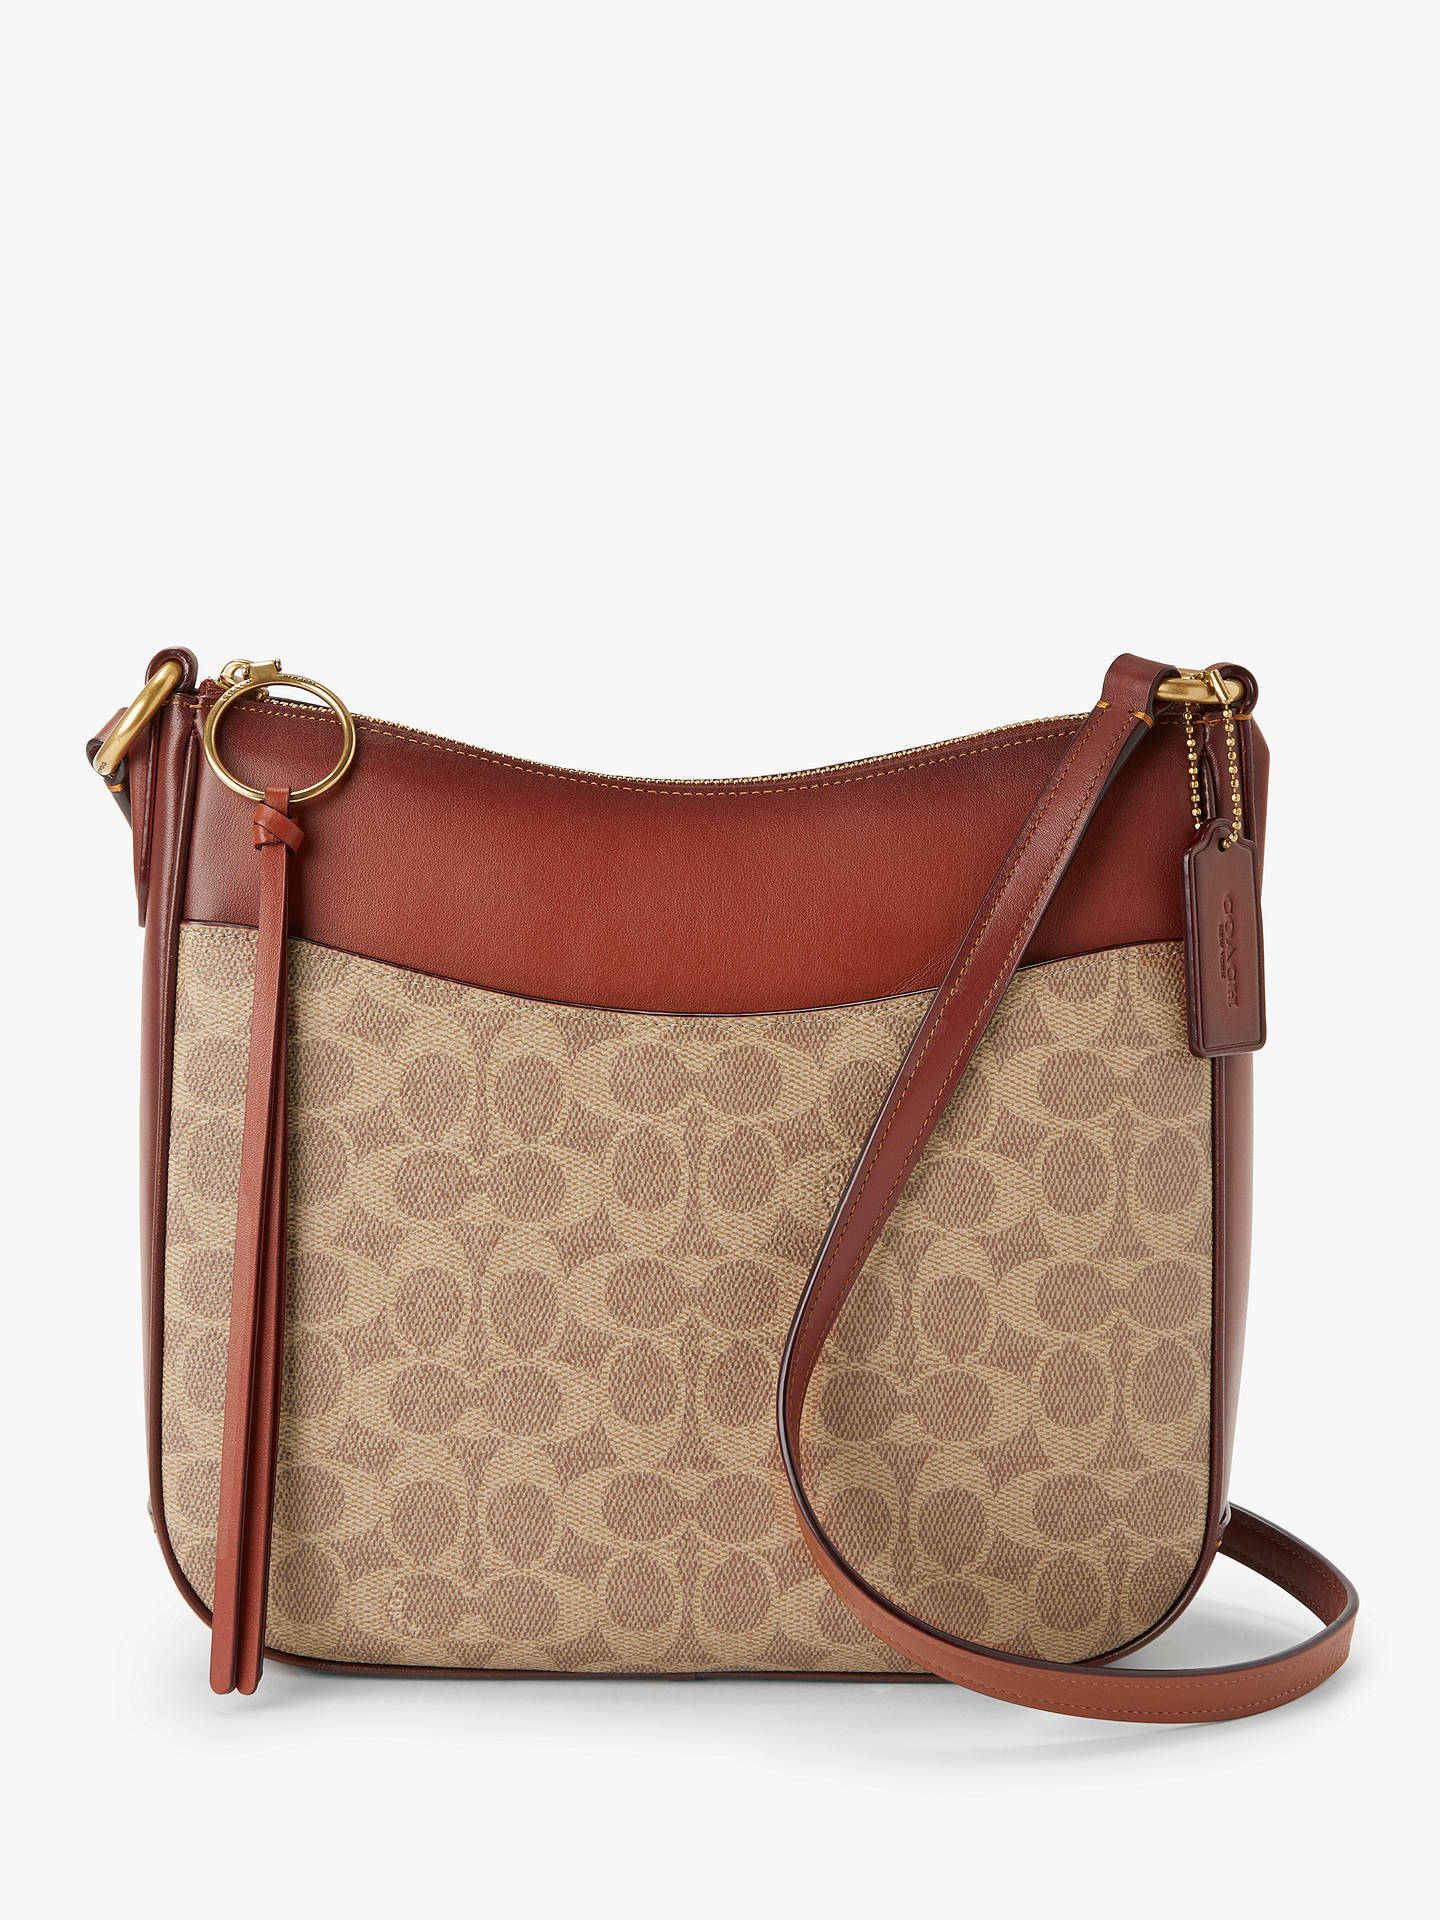 09bc1269606f Buy Coach Signature Chaise Cross Body Bag